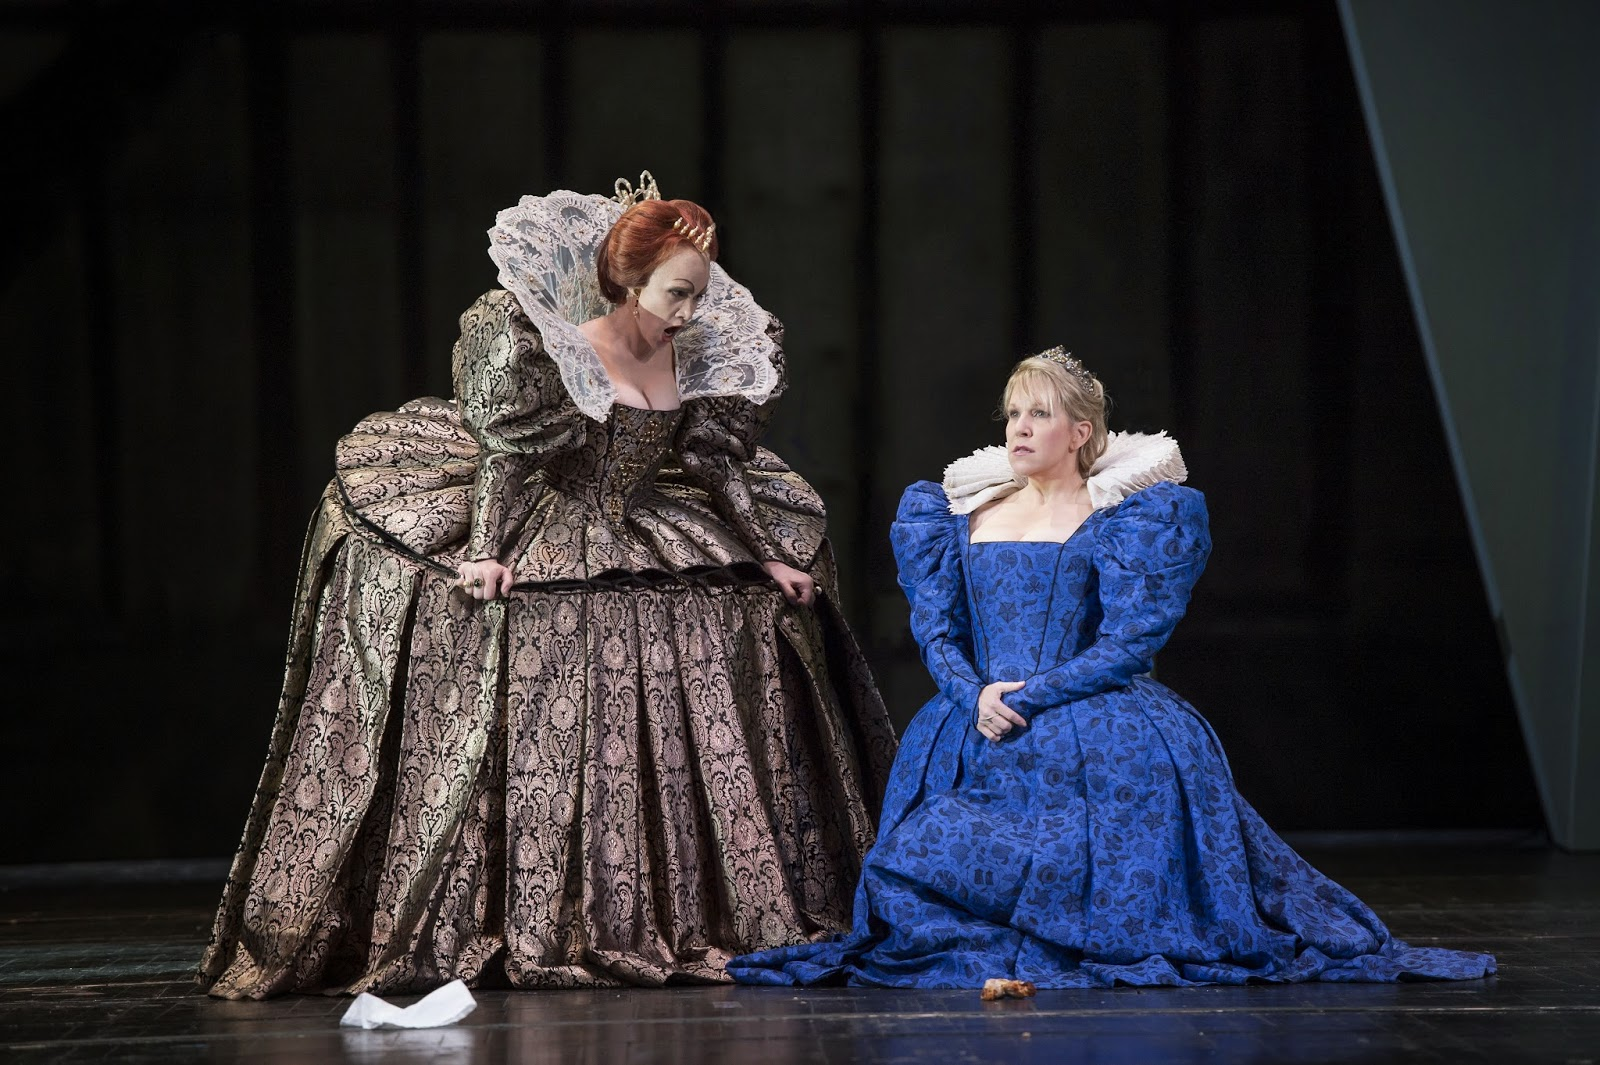 Carmen Giannattasio as Elisabetta I and Joyce DiDonato as Maria Stuarda in the 2014 Covent Garden production